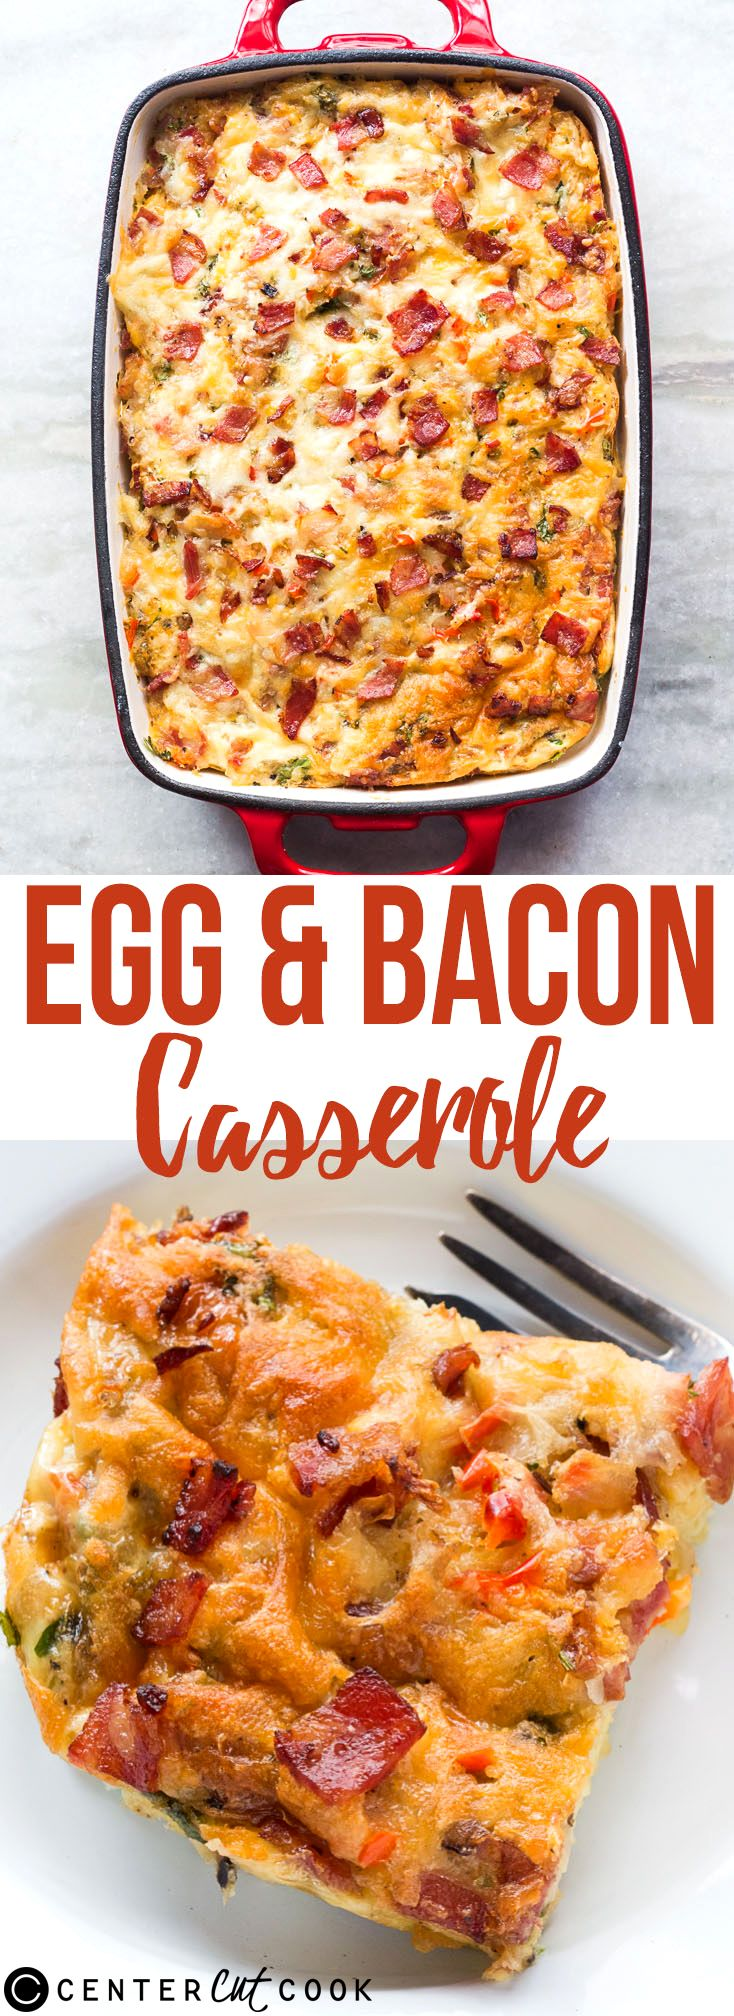 The only breakfast recipe you'll ever need when you are feeding a crowd. Super delicious, perfect for brunch egg and bacon breakfast casserole!